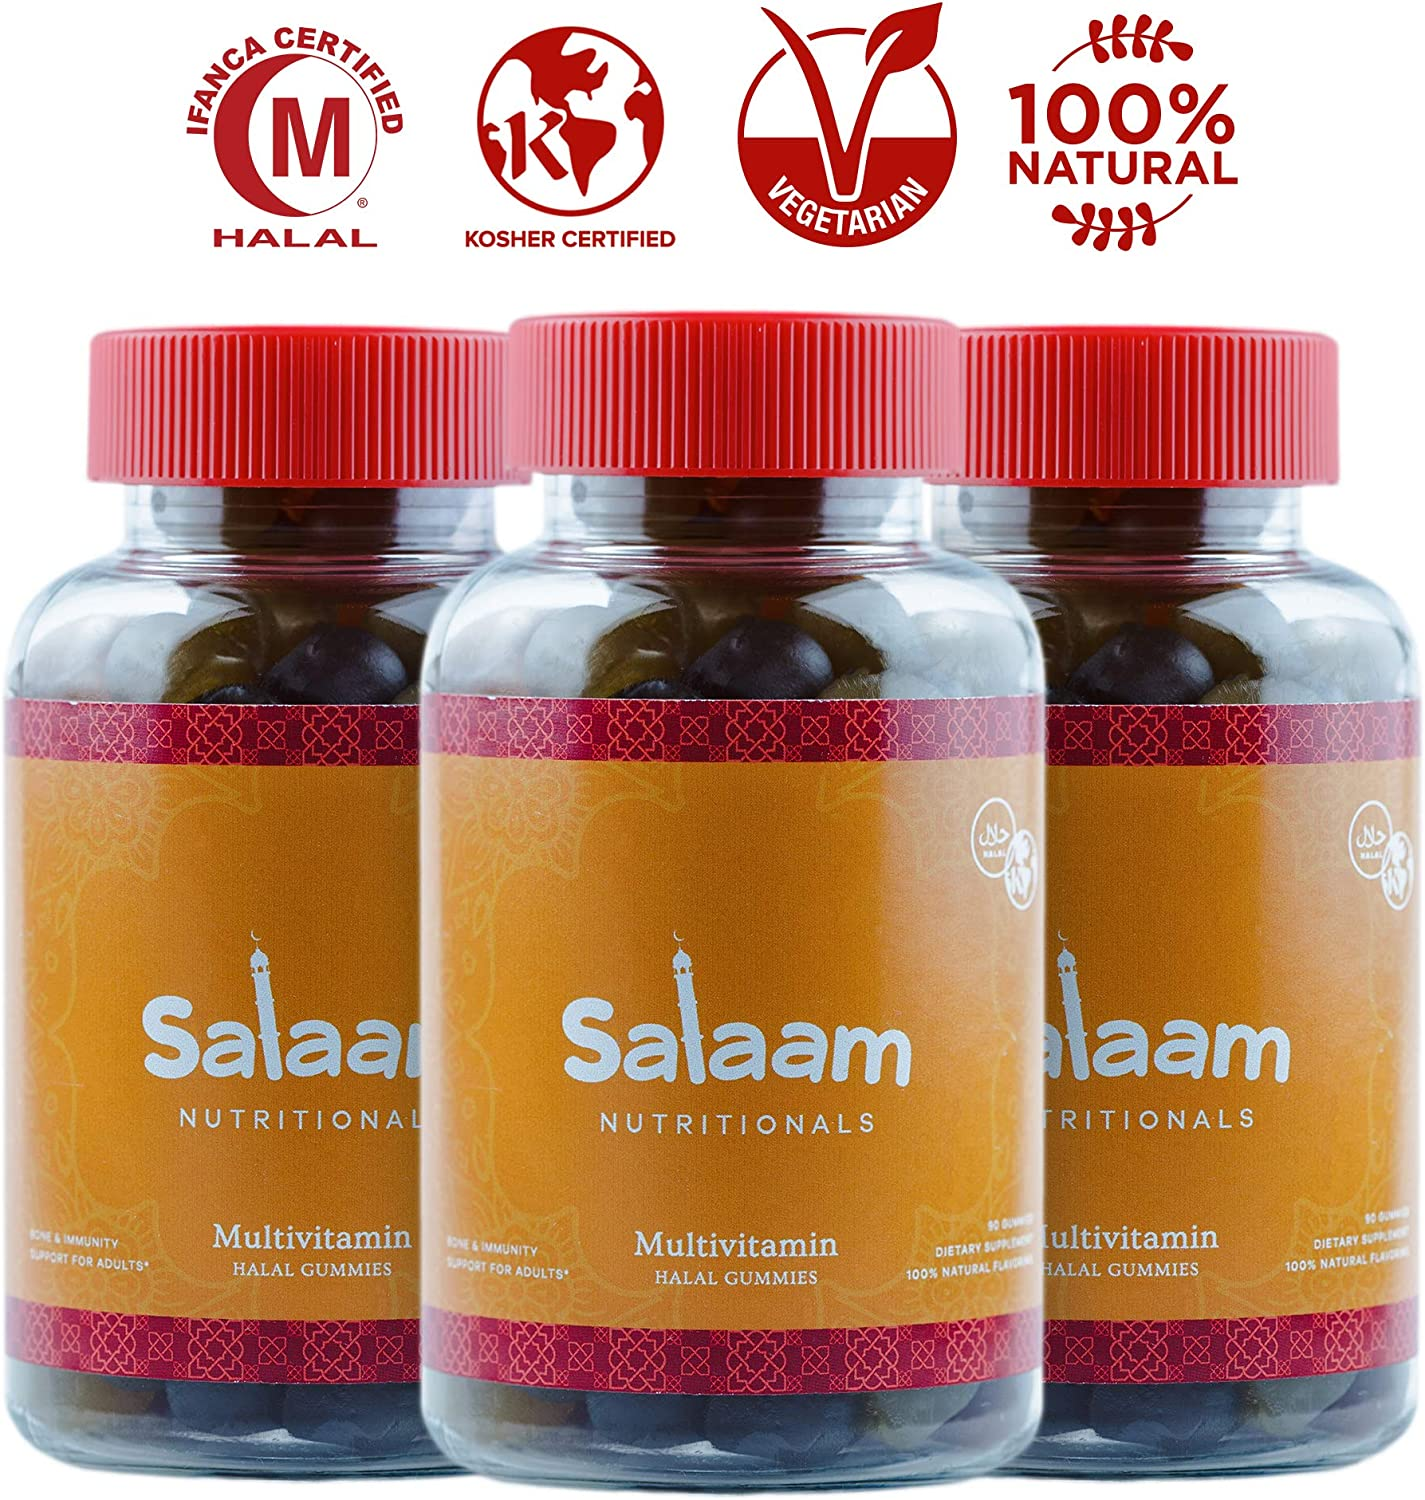 Salaam Nutritionals Halal Adult Gummy Multivitamins 11 Essential Vitamins and Minerals with Antioxidants Kosher, Vegetarian, Non-GMO, Gluten, Dairy, Nut Free 3 Pack, 270 Total Count